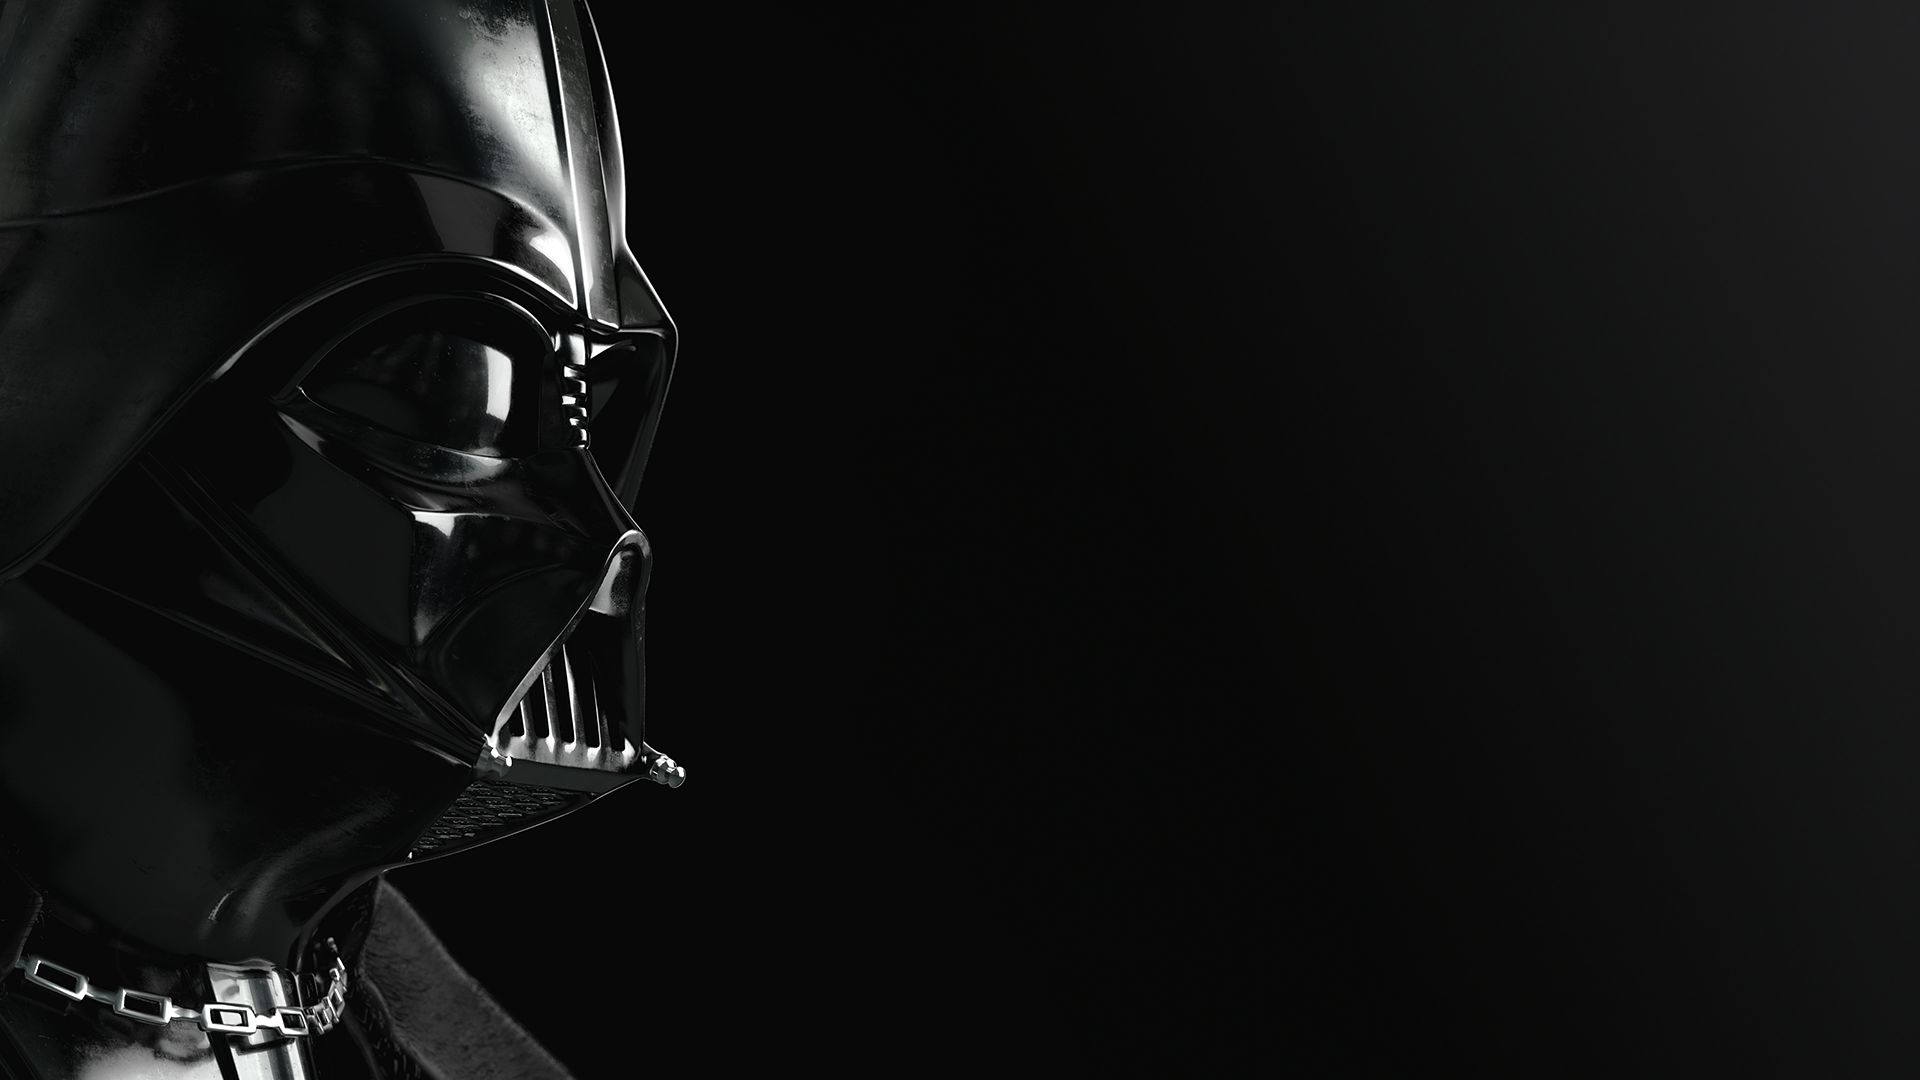 Darth Vader Hd Wallpapers Backgrounds Wallpaper 3d